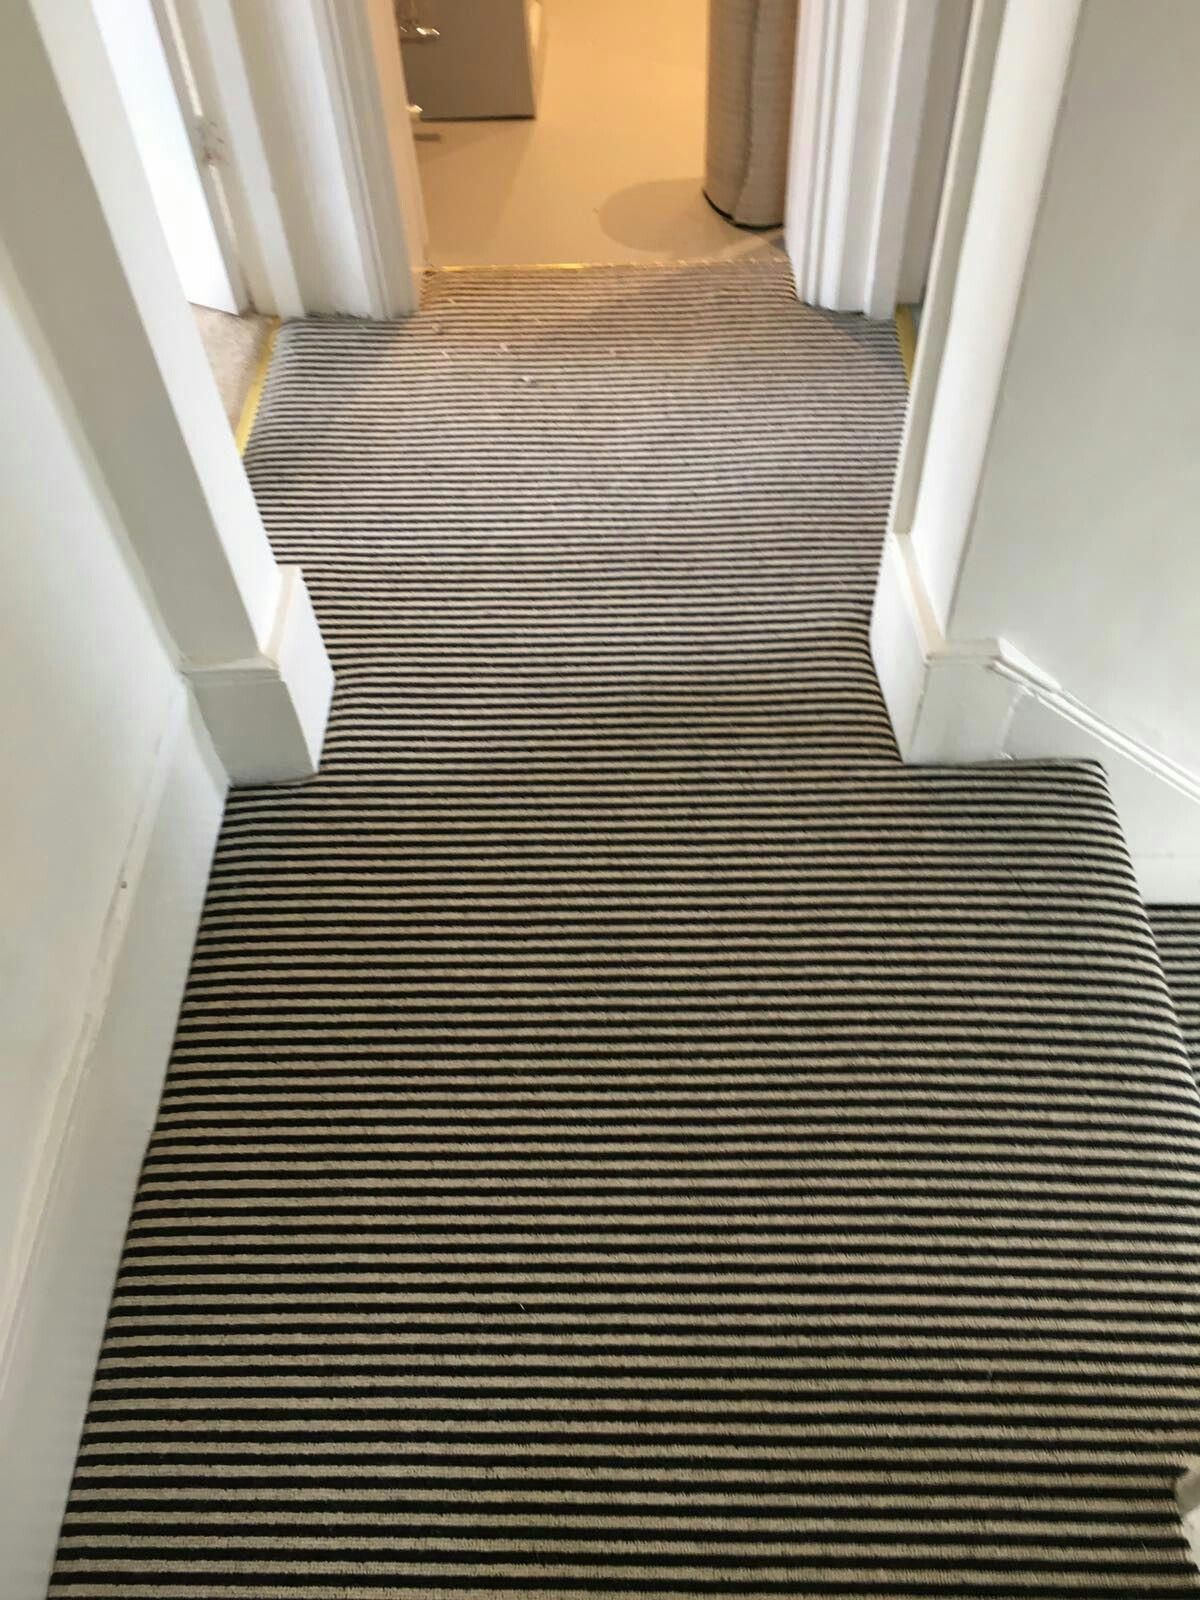 Best Carpet Runners For Stairs Amazon Bedroom Carpet Striped 640 x 480